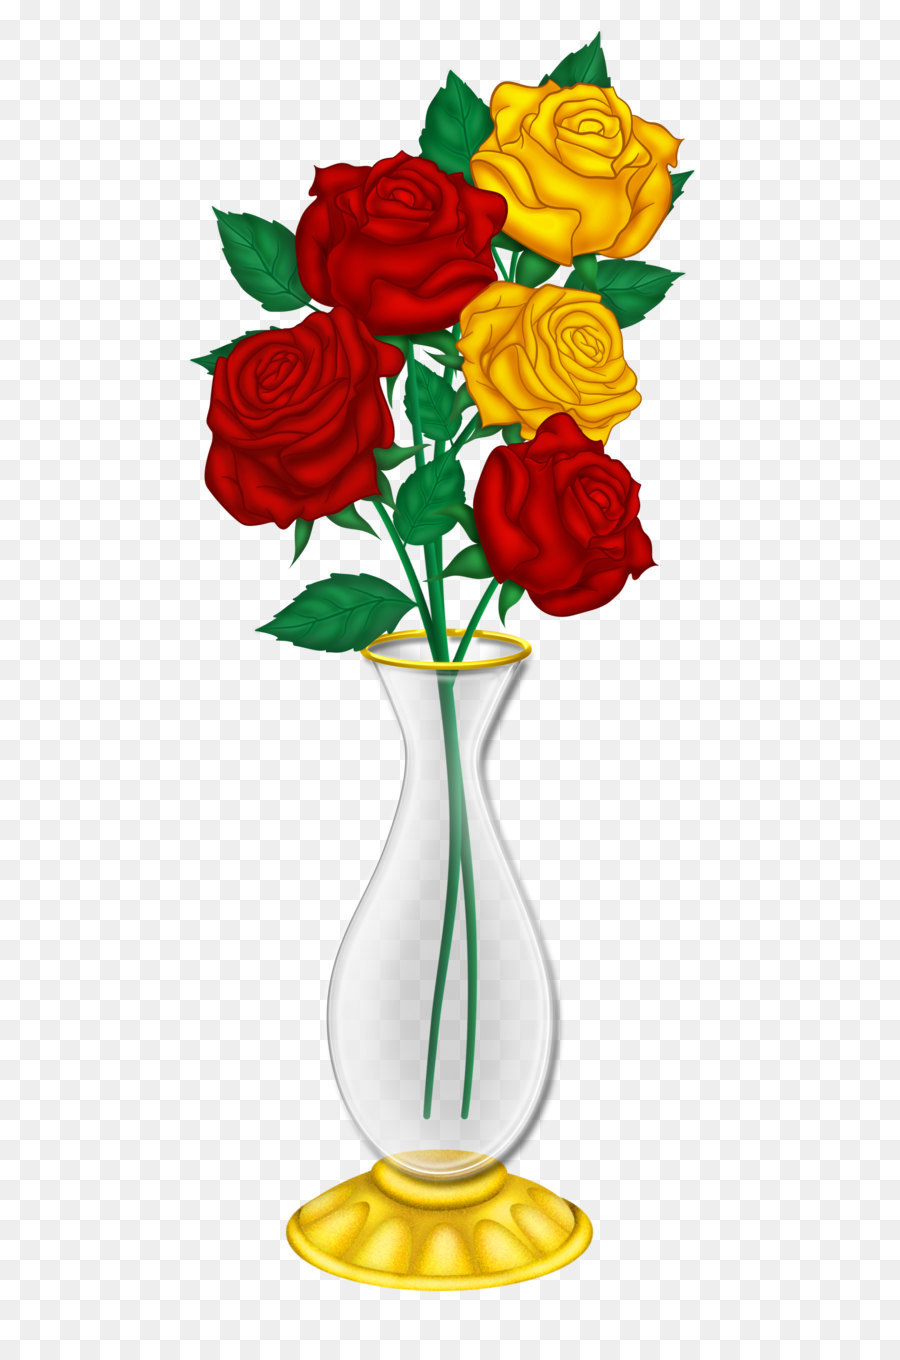 Vase Flower Rose Clip Art Beautiful Vase With Red And Yellow Roses